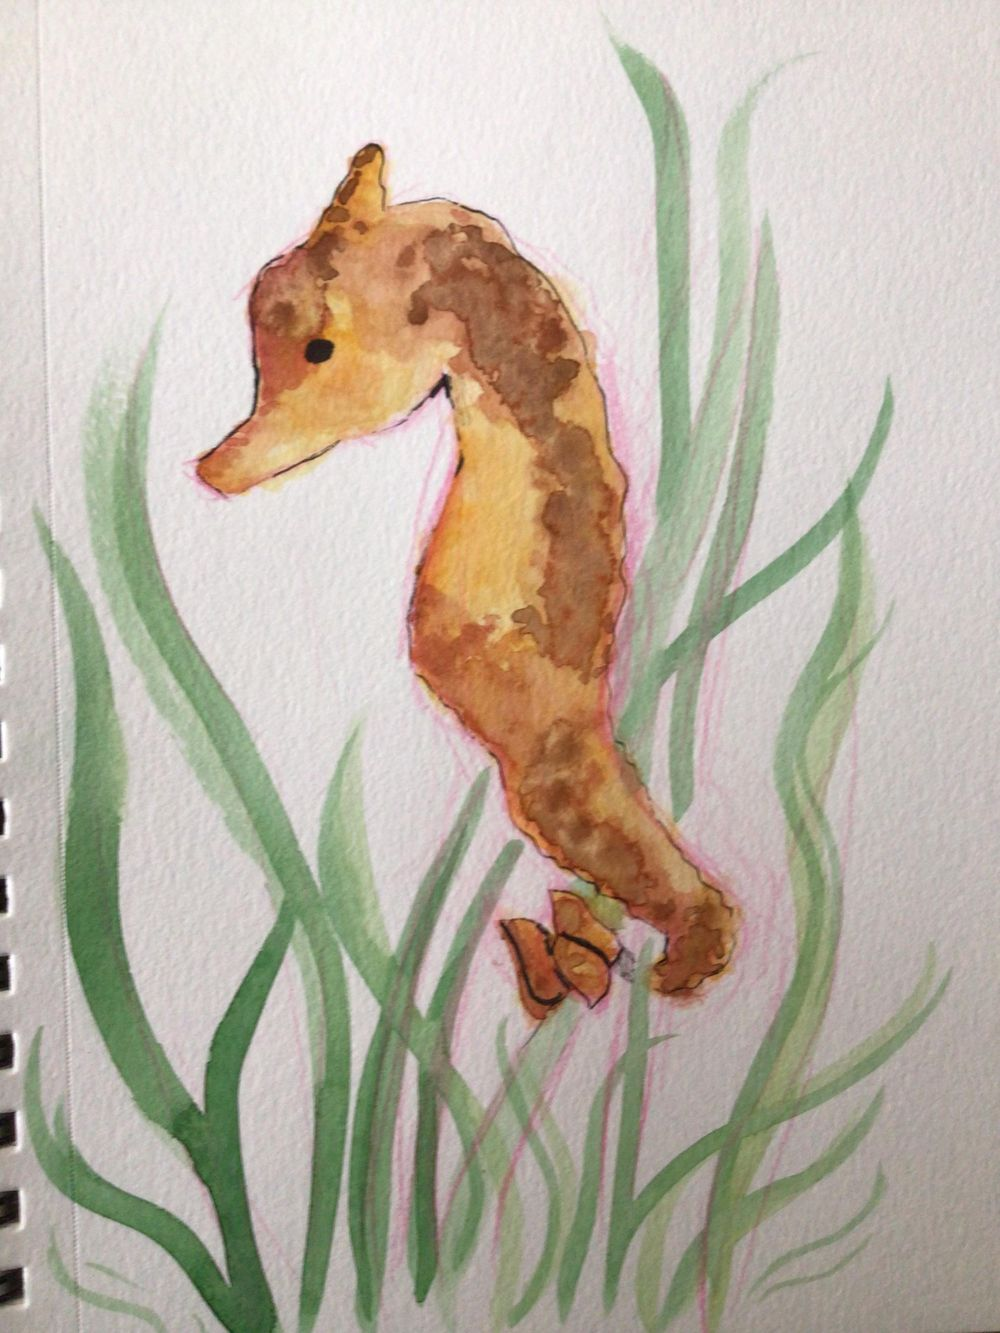 Watercolors - image 1 - student project